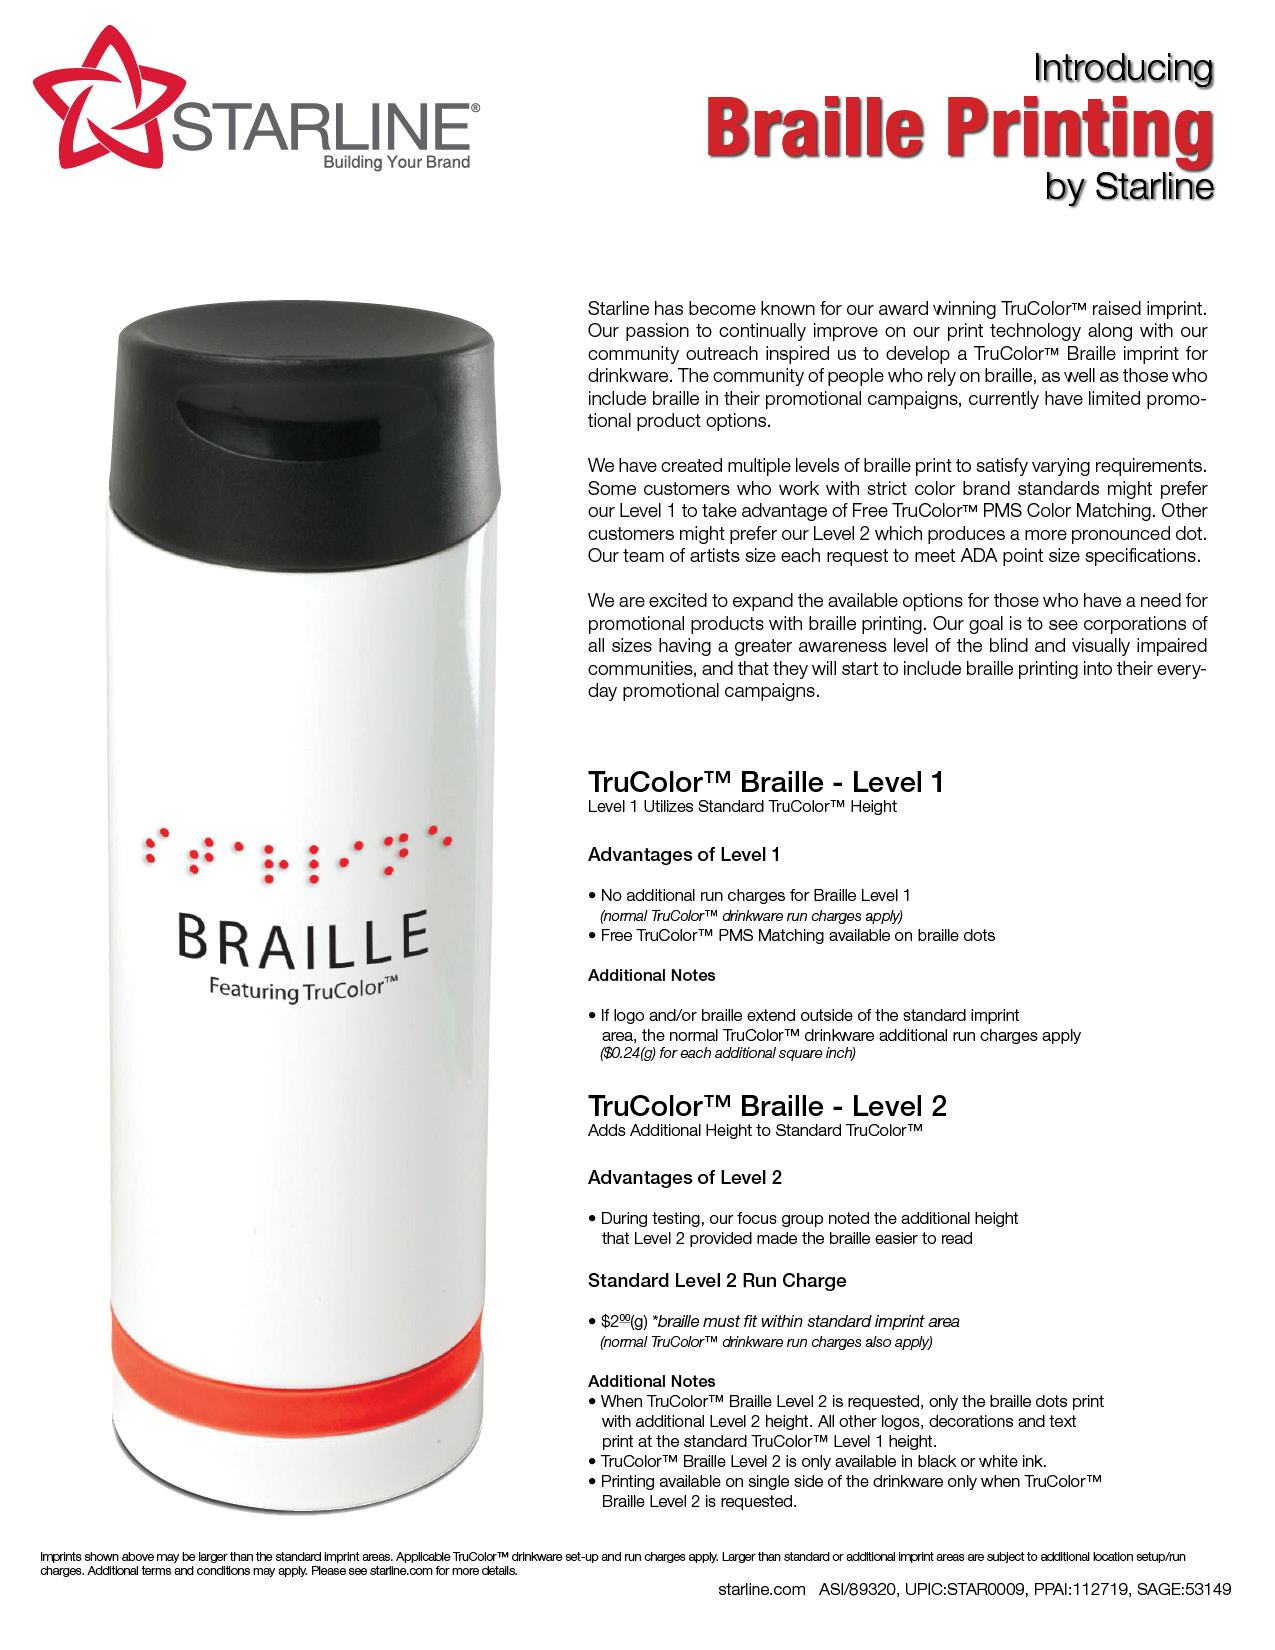 Braille Printing By Starline